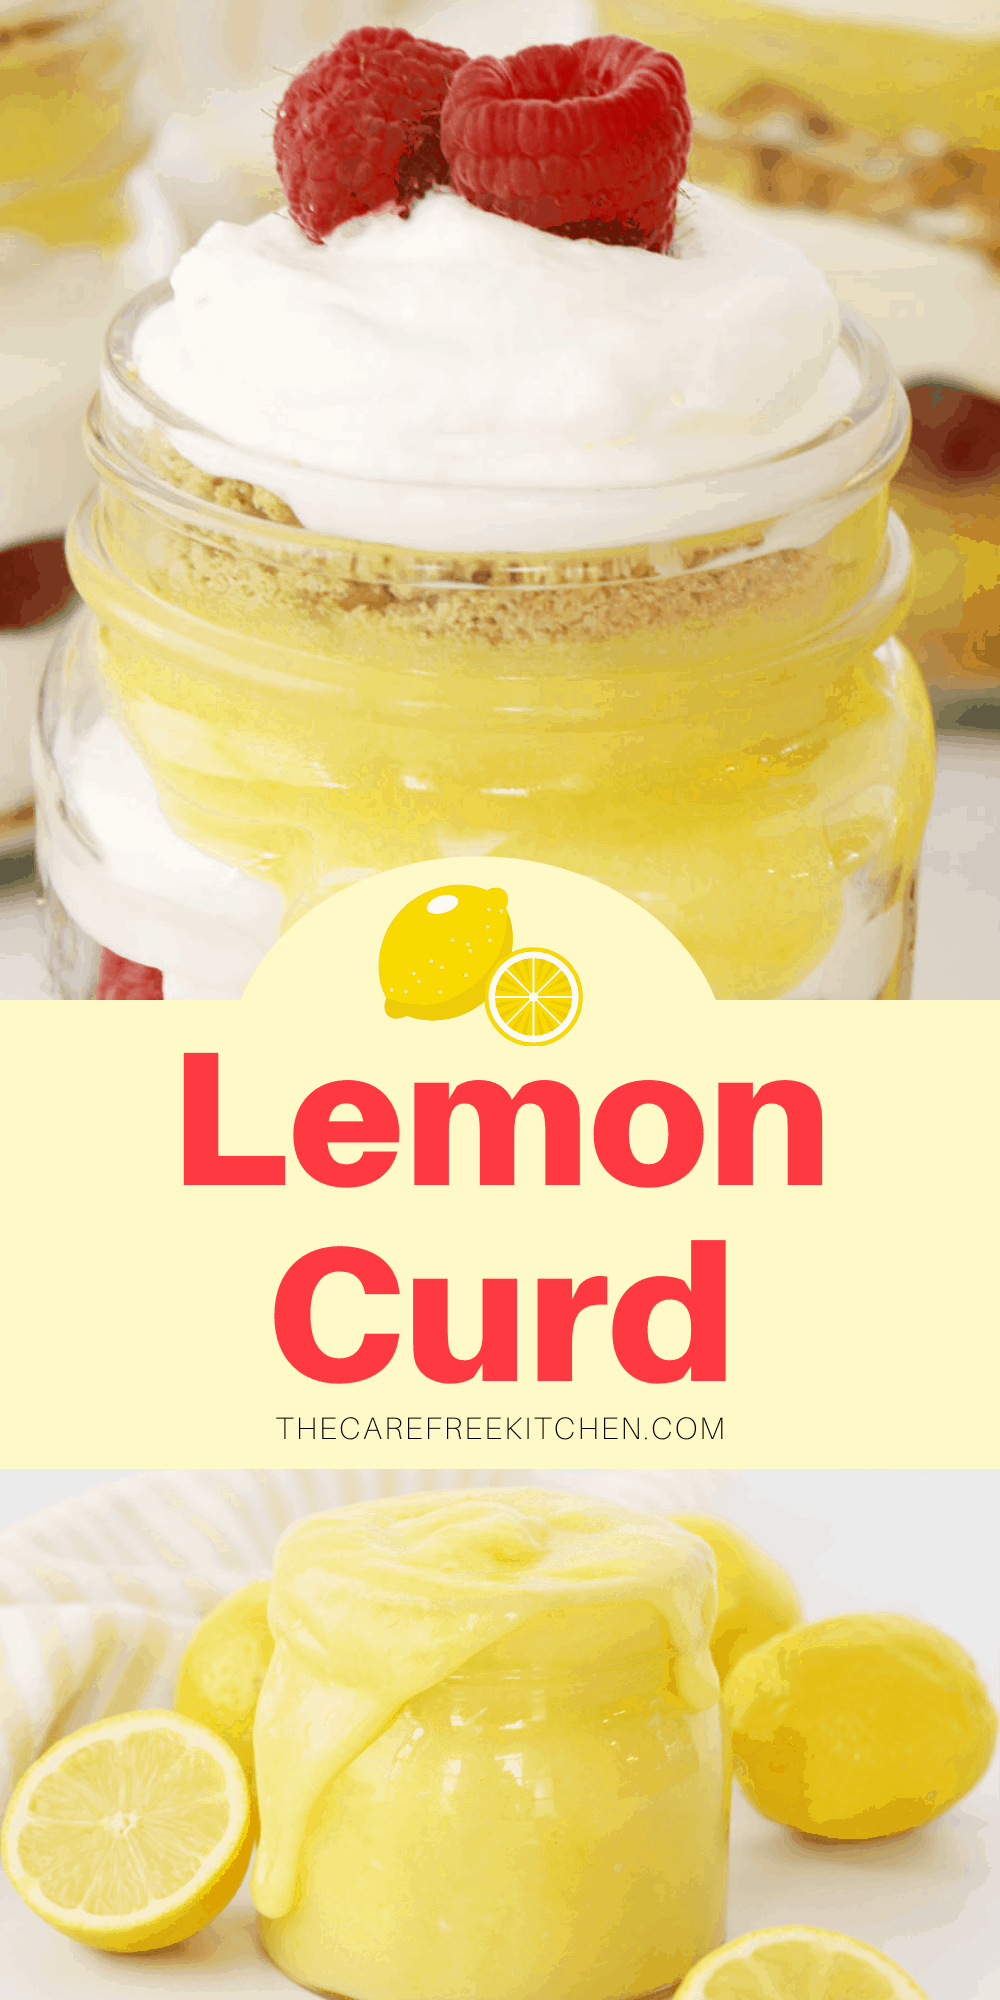 Pinterest pin for Lemon Curd.